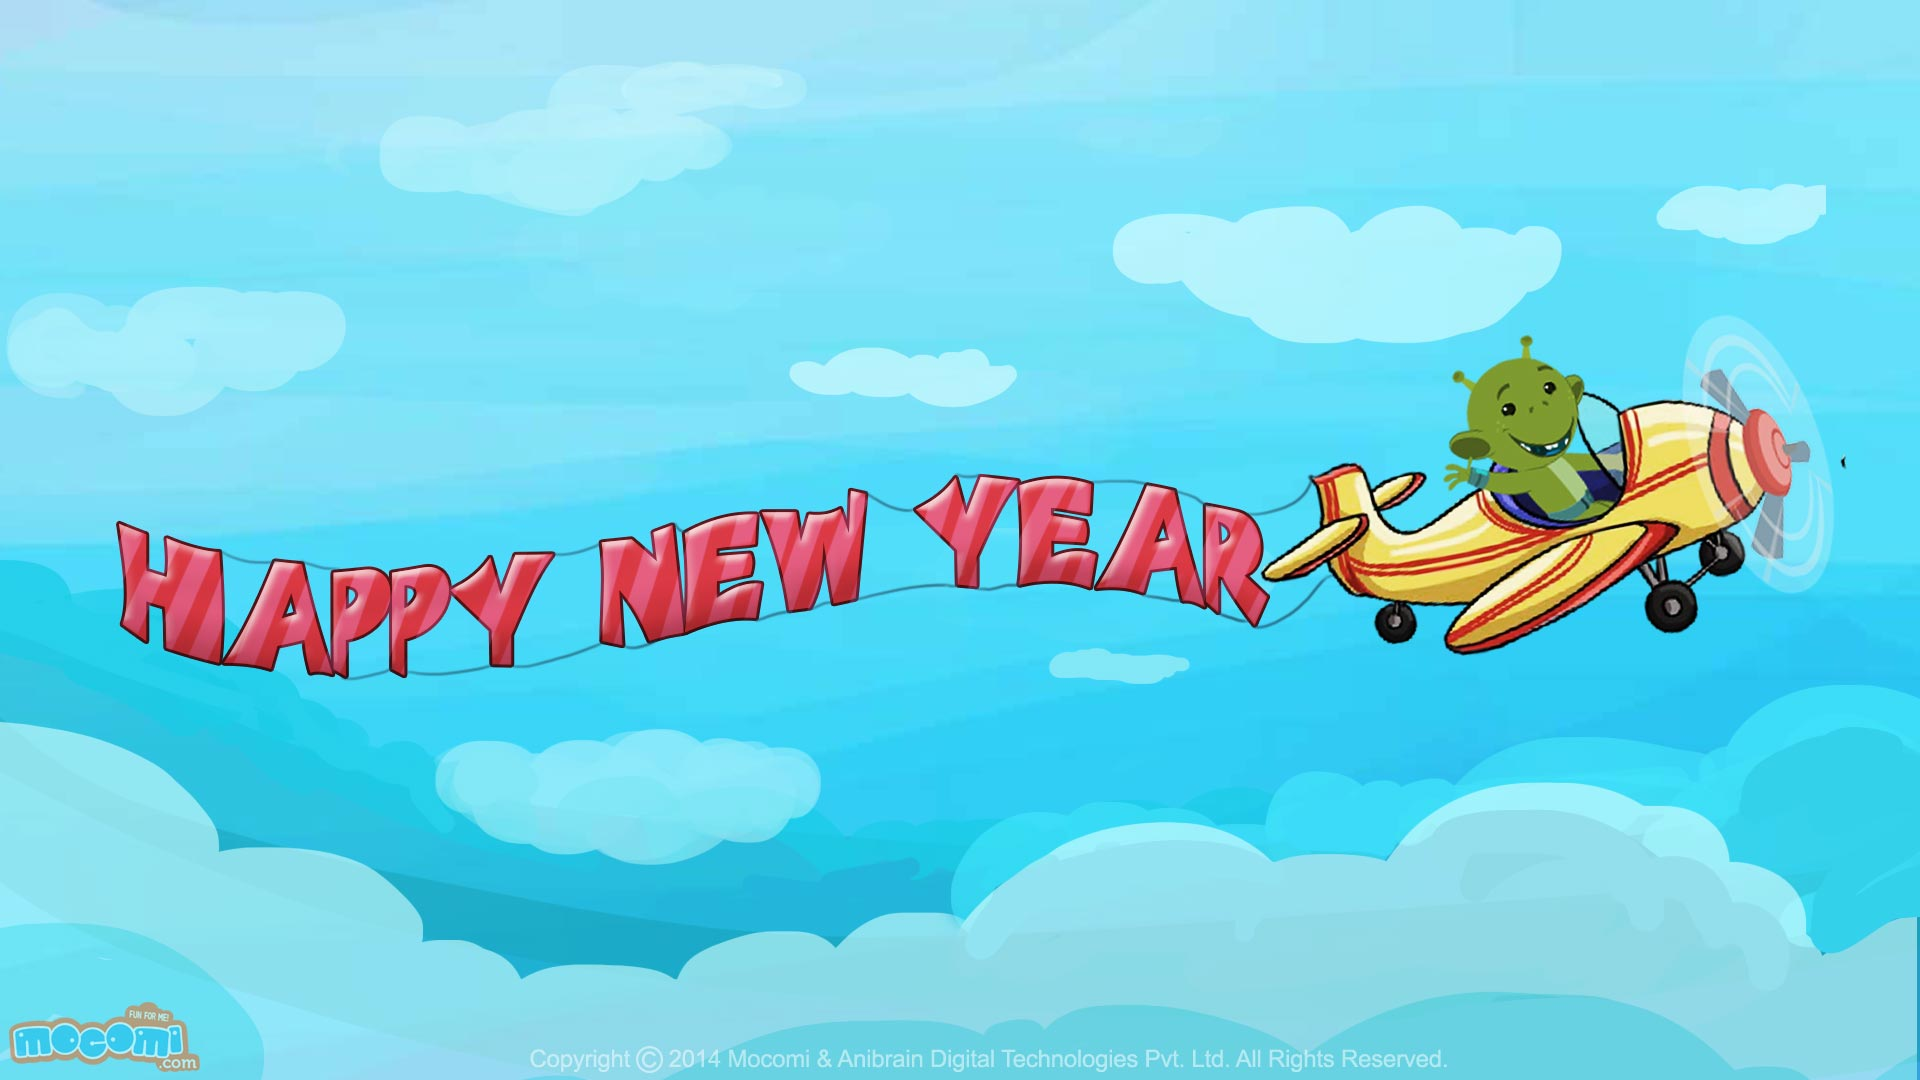 Happy New Year Wallpaper- 5